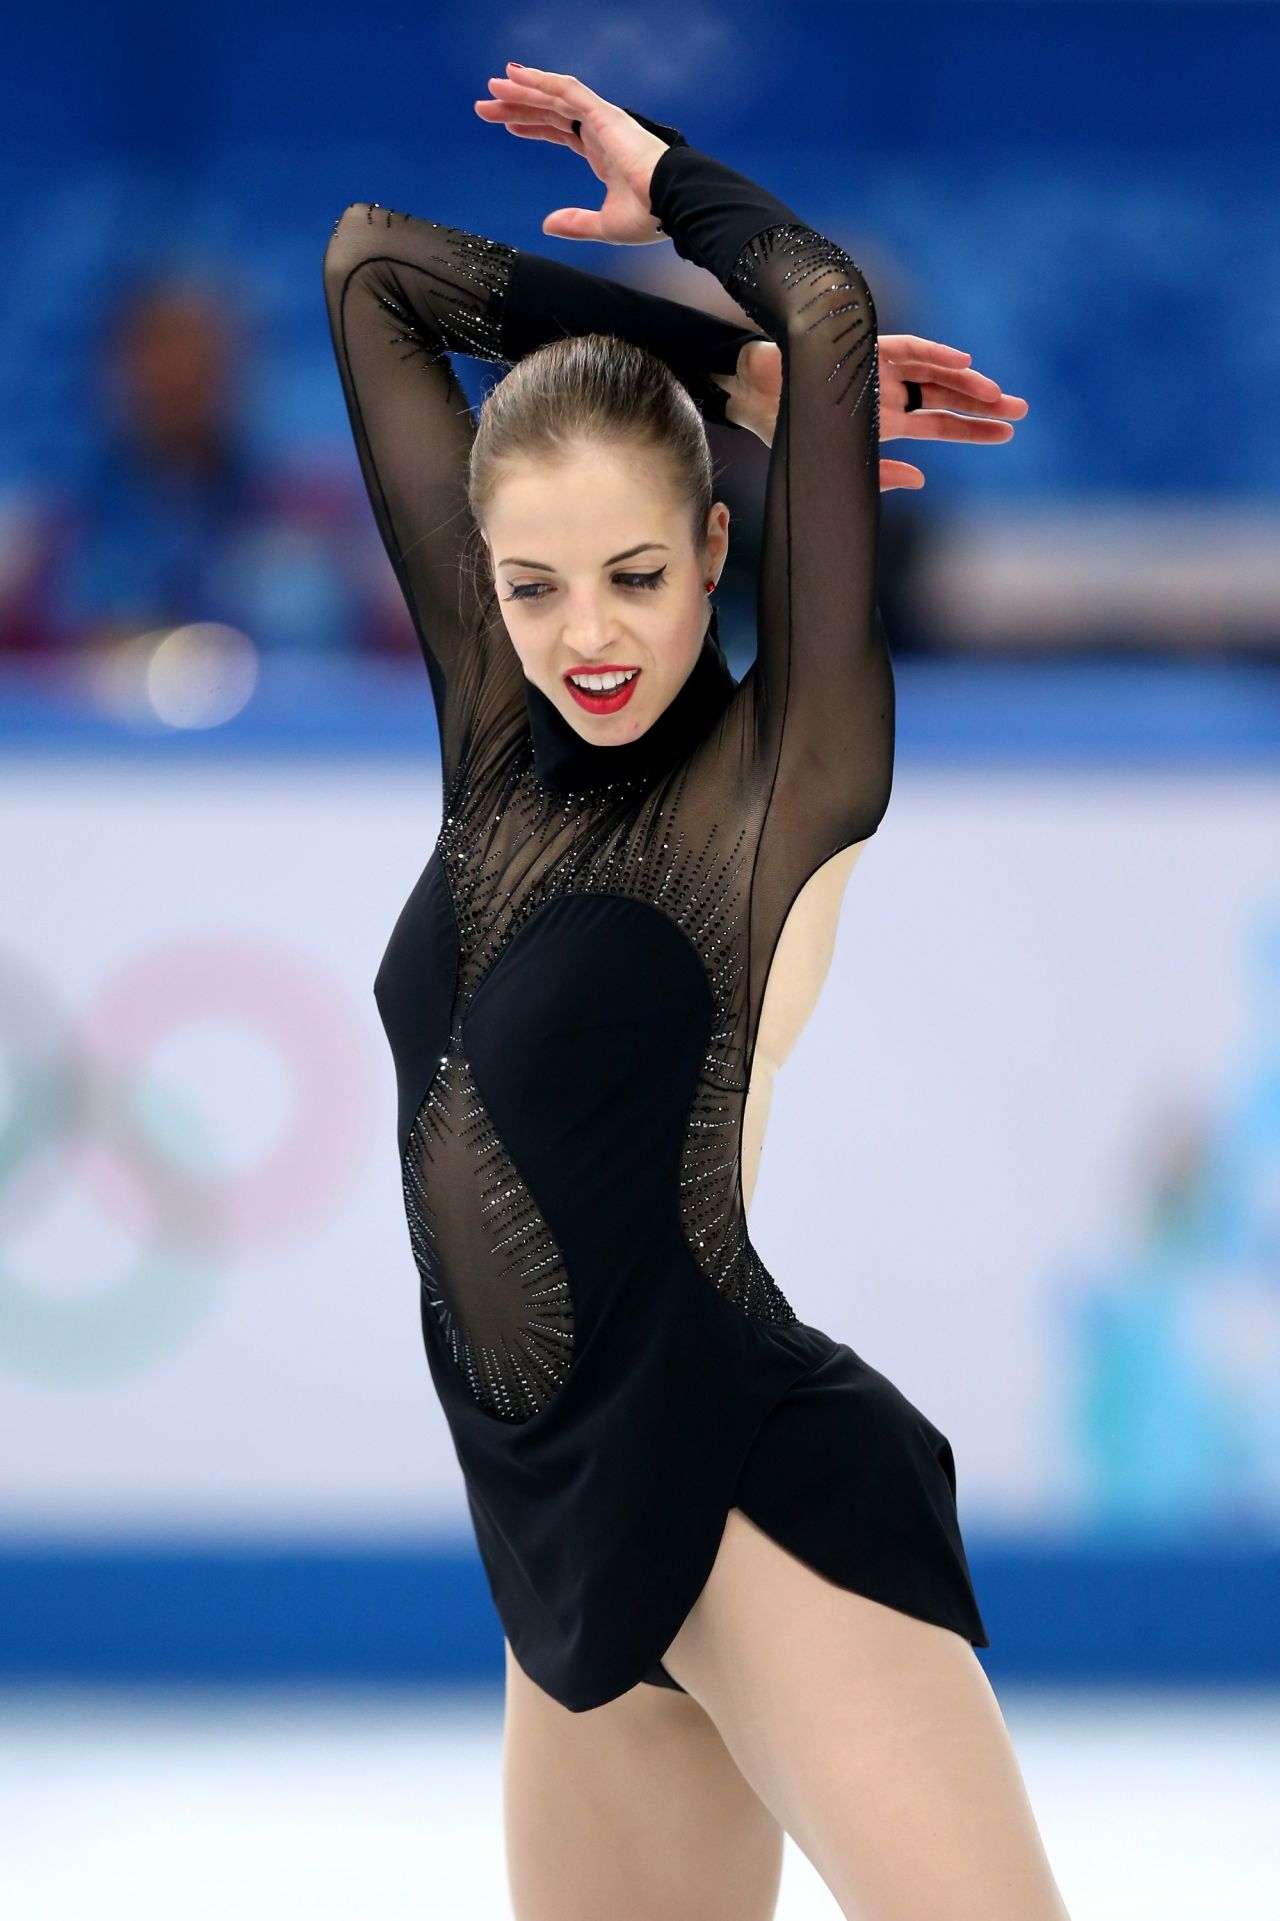 Carolina Kostner Latest Photos Celebmafia